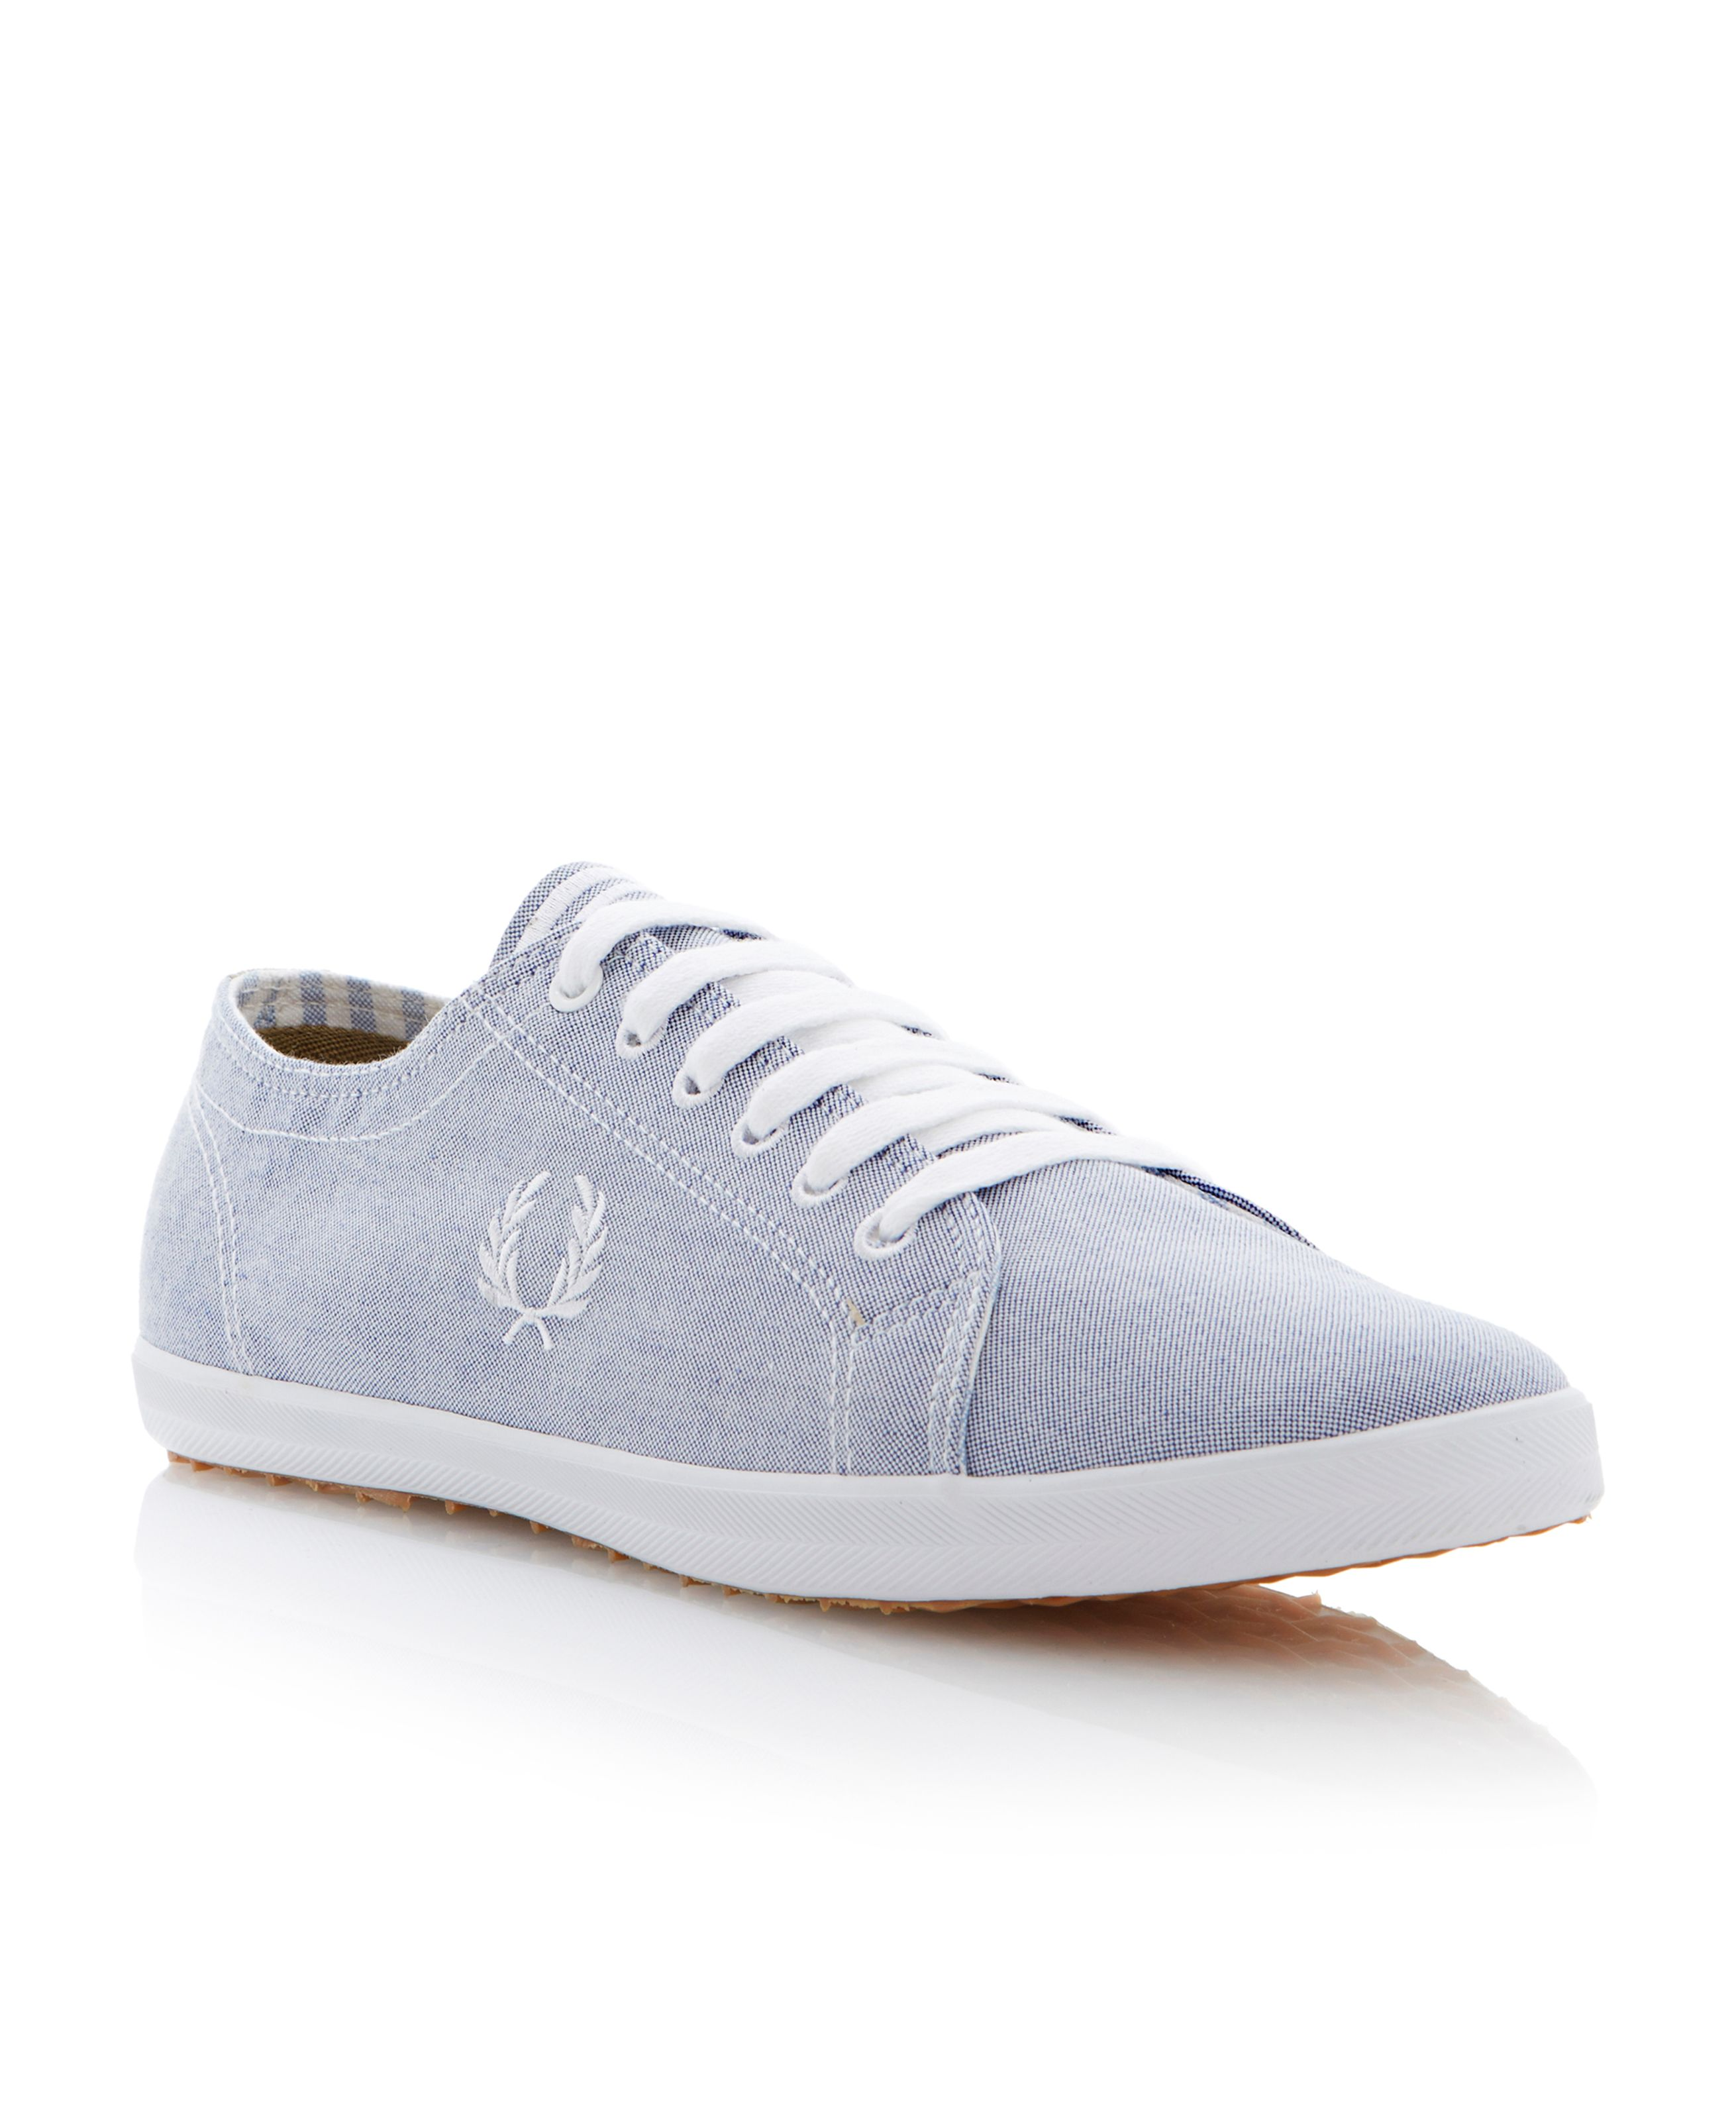 Kingston oxford lace up trainers